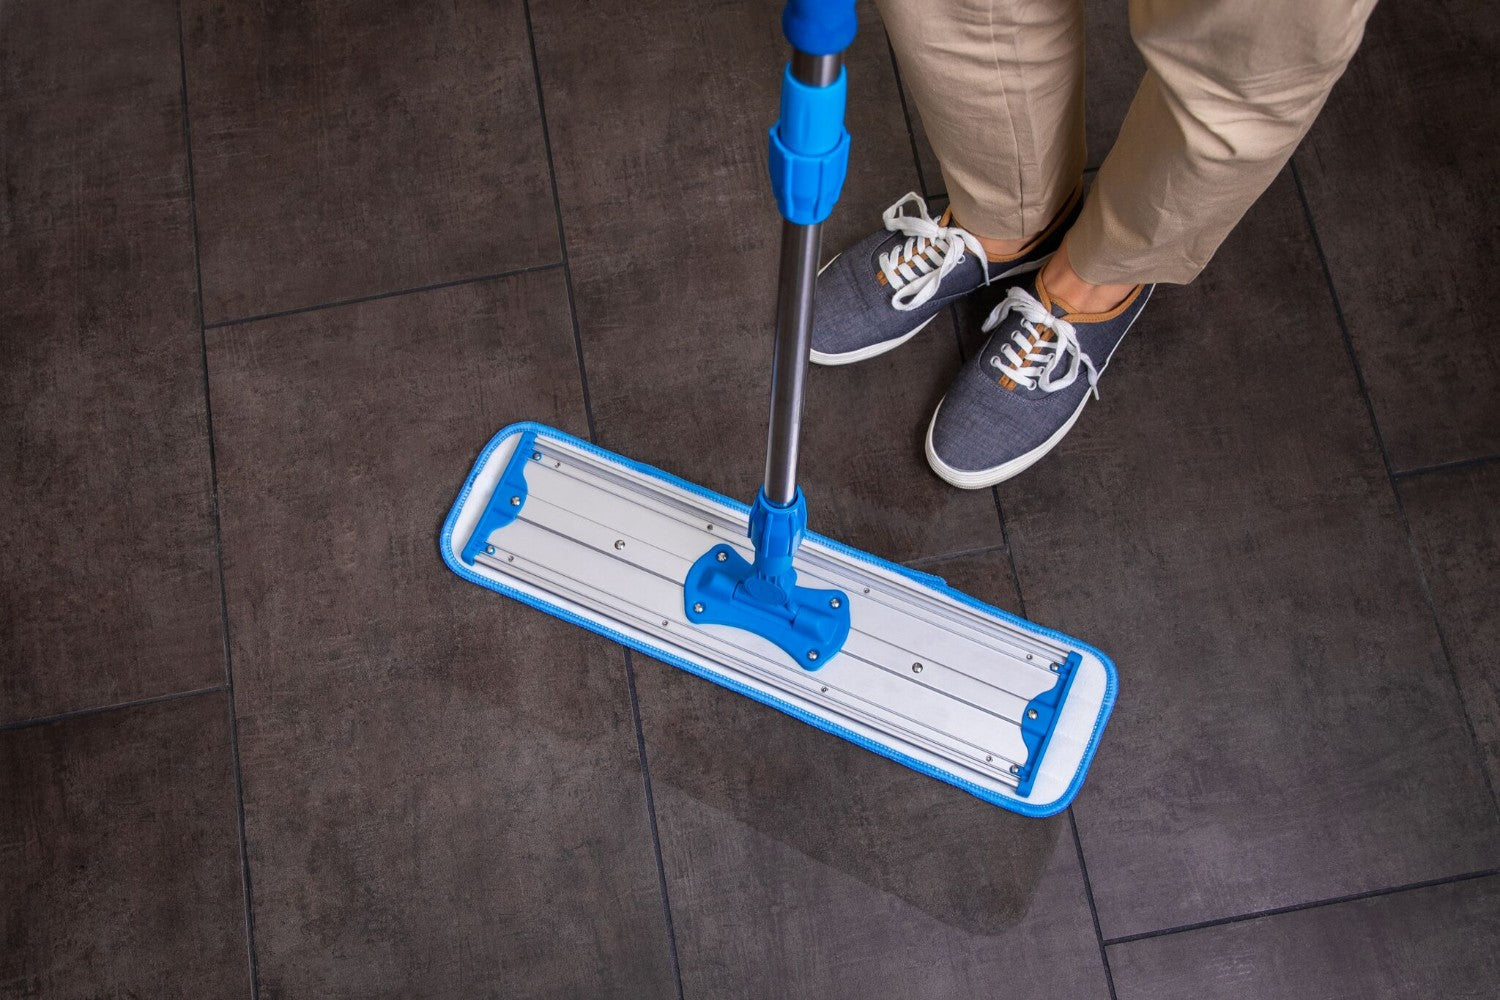 MWM20-microfiber mop covers tile floors